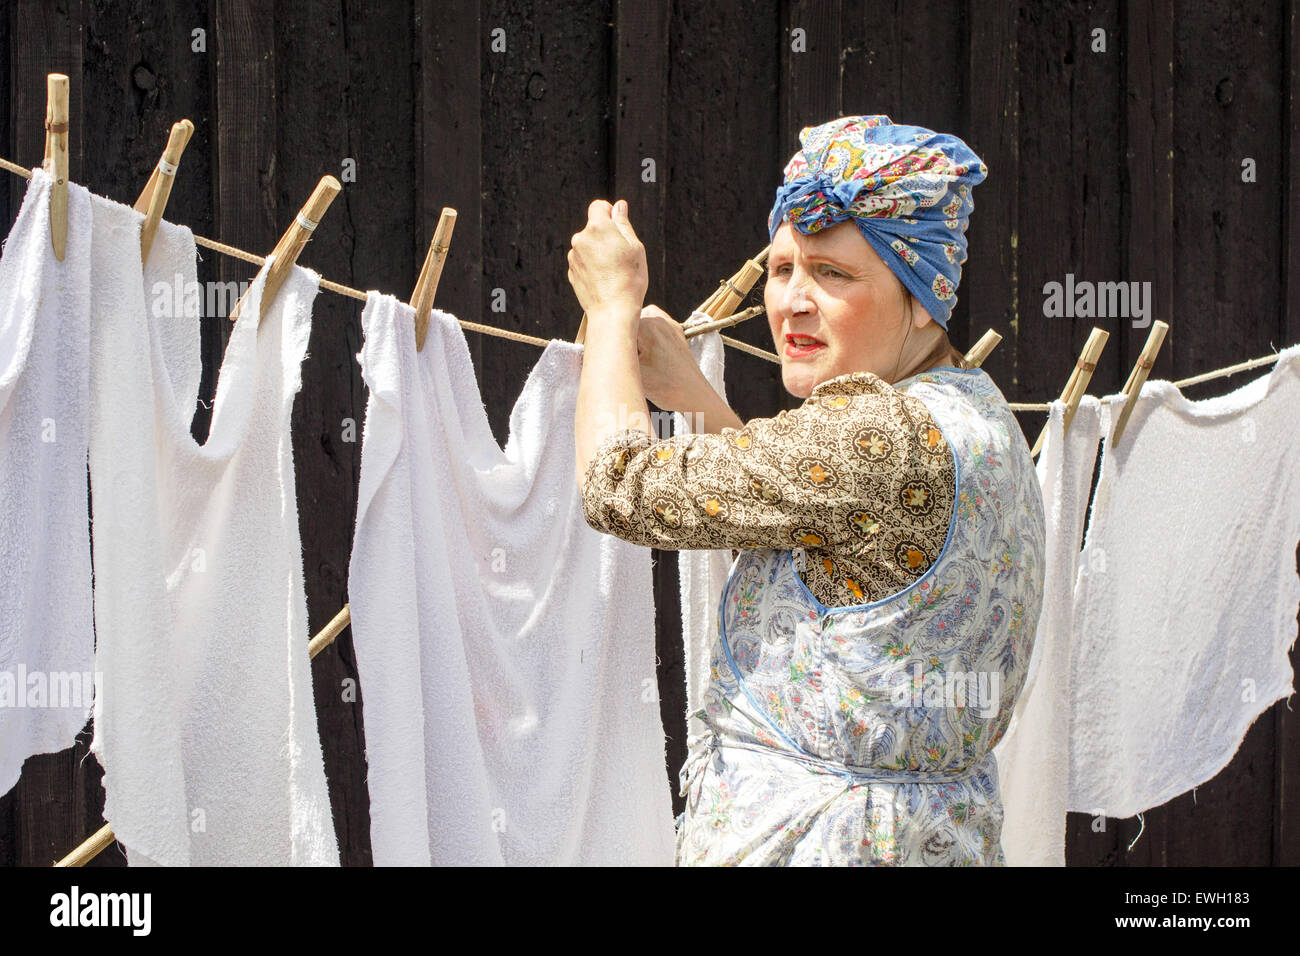 A woman dressed in the style of a 1940's (WW2) housewife hangs out washing on a clothes line. - Stock Image